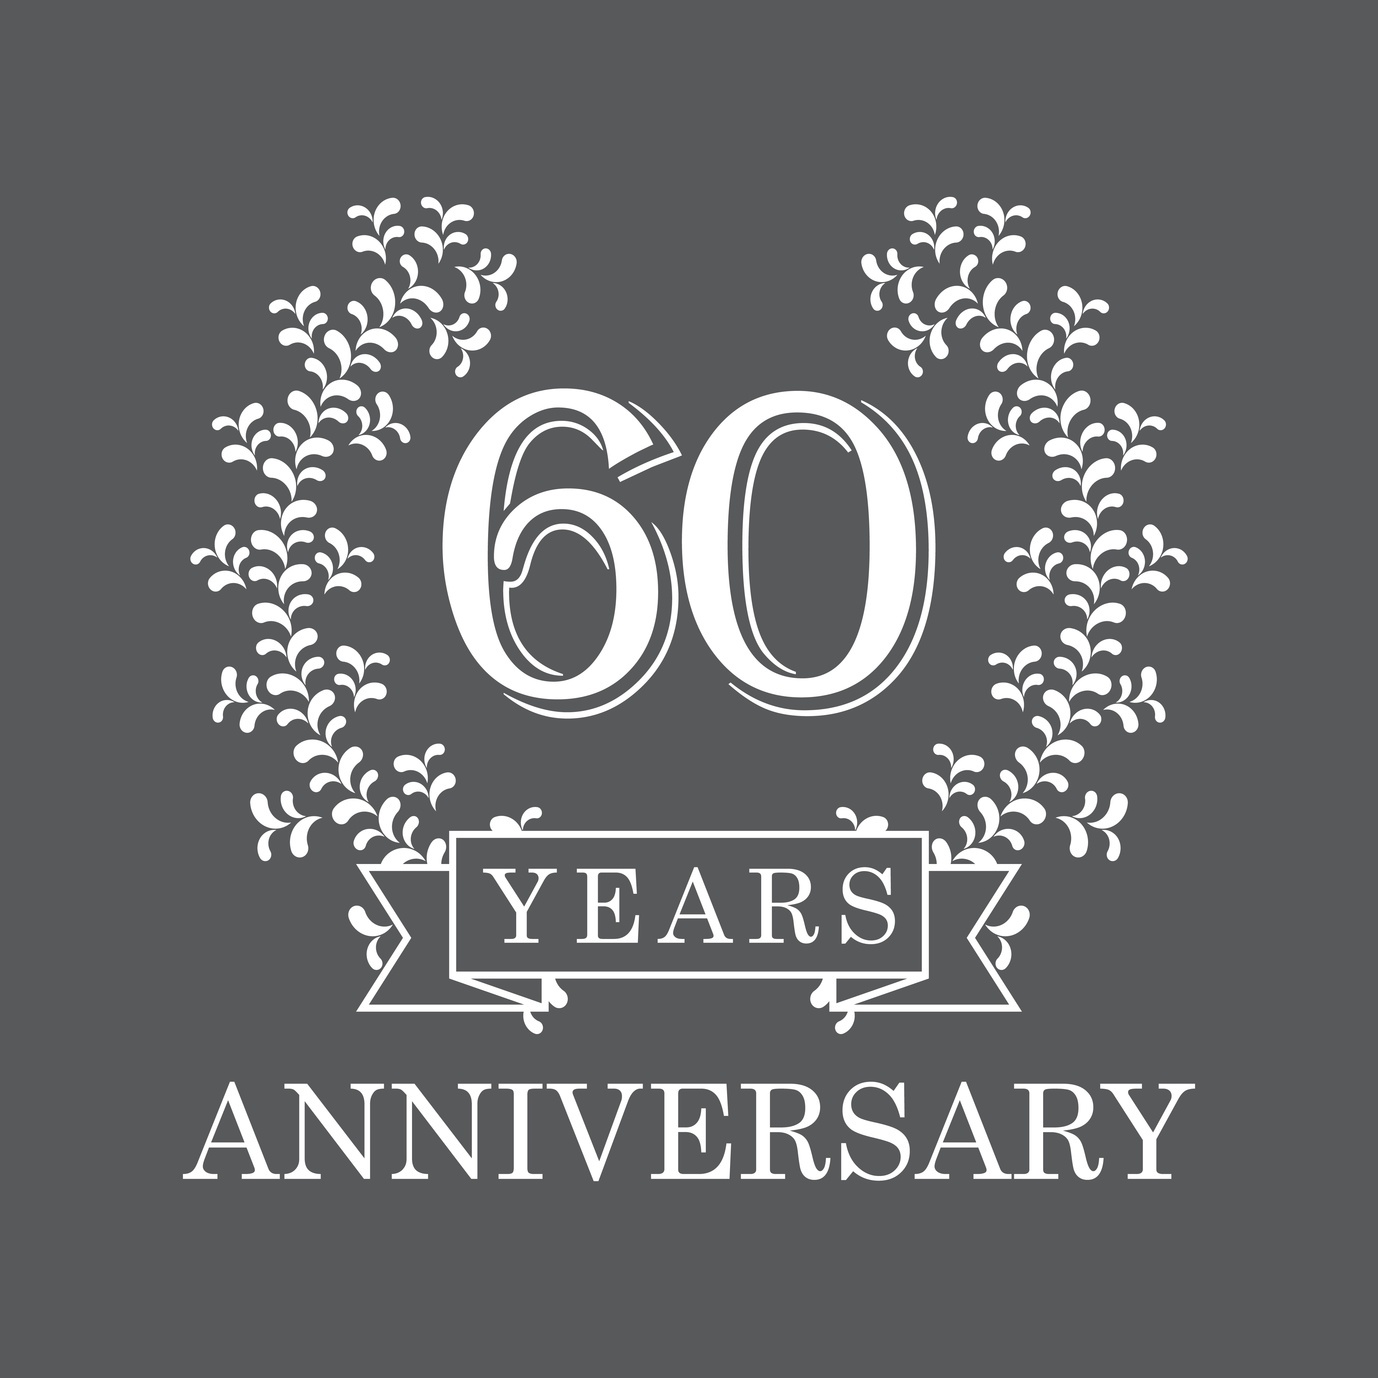 Disability benefits celebrate 60 years